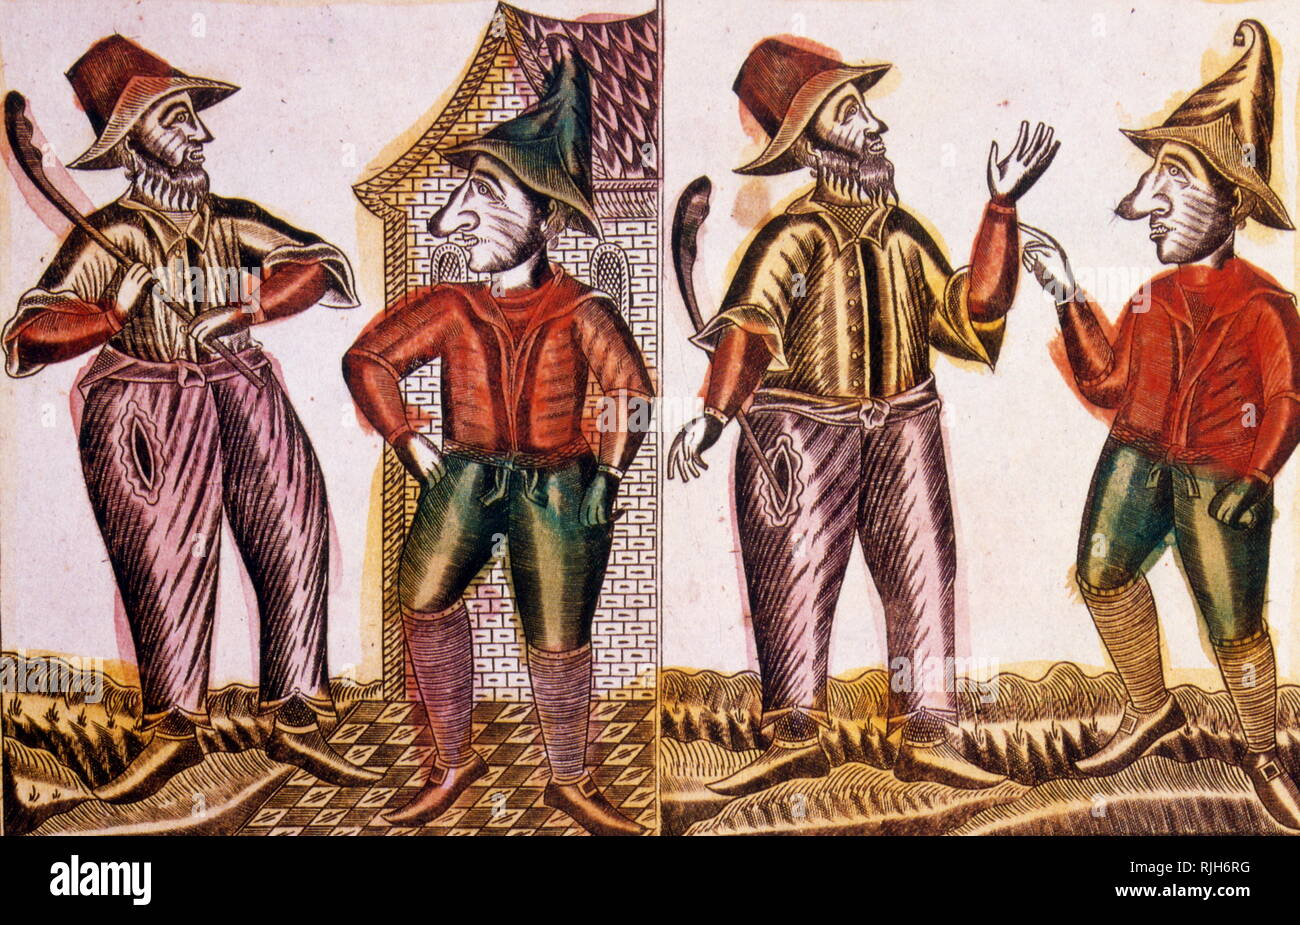 Traditional Russian woodcut showing the story of Mr Frost. 1825 - Stock Image